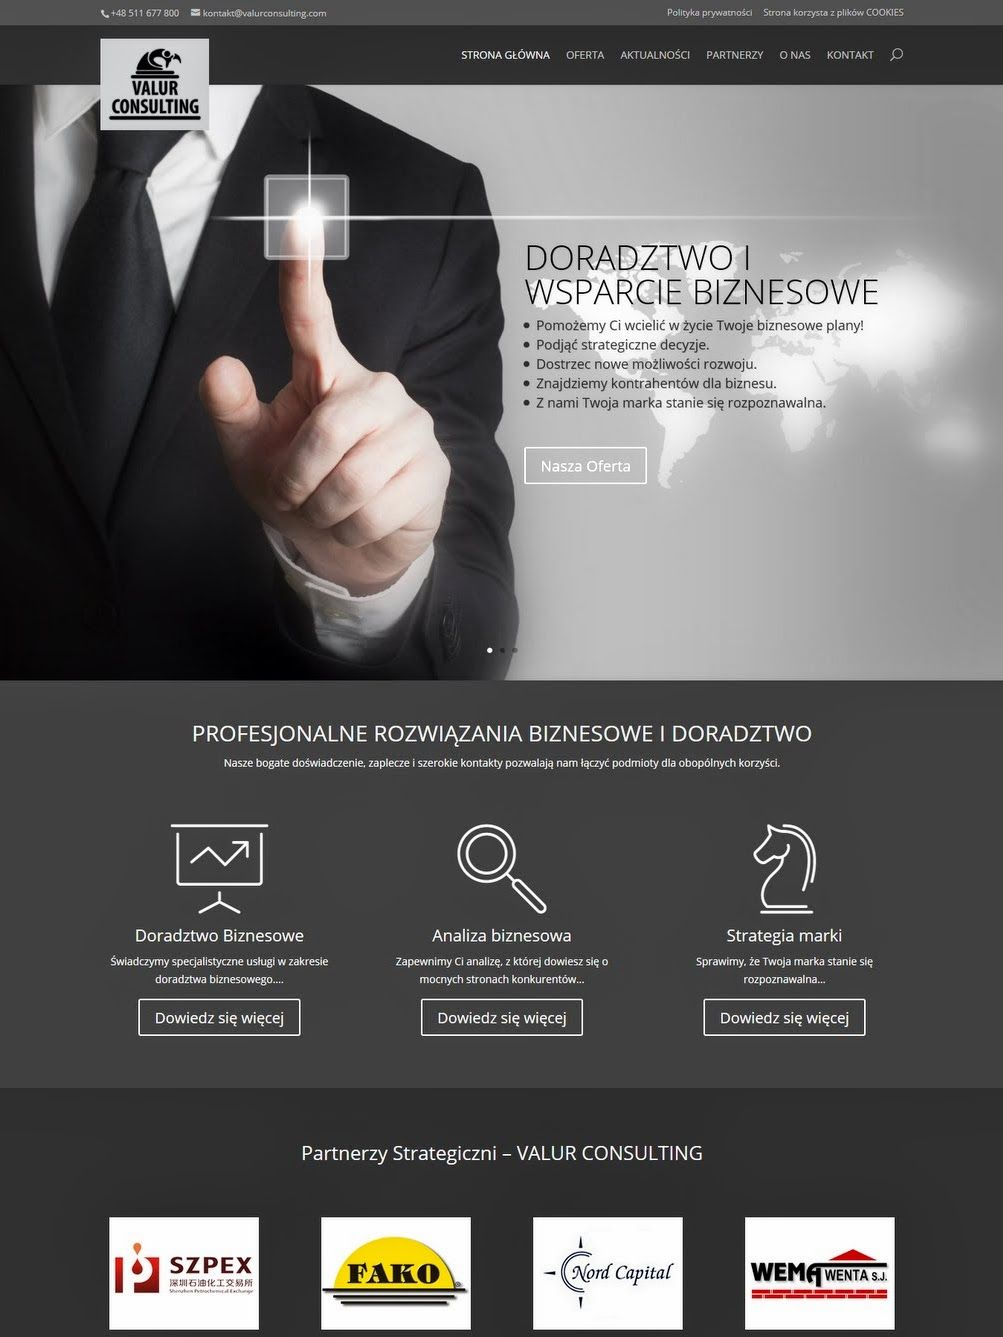 valurconsulting